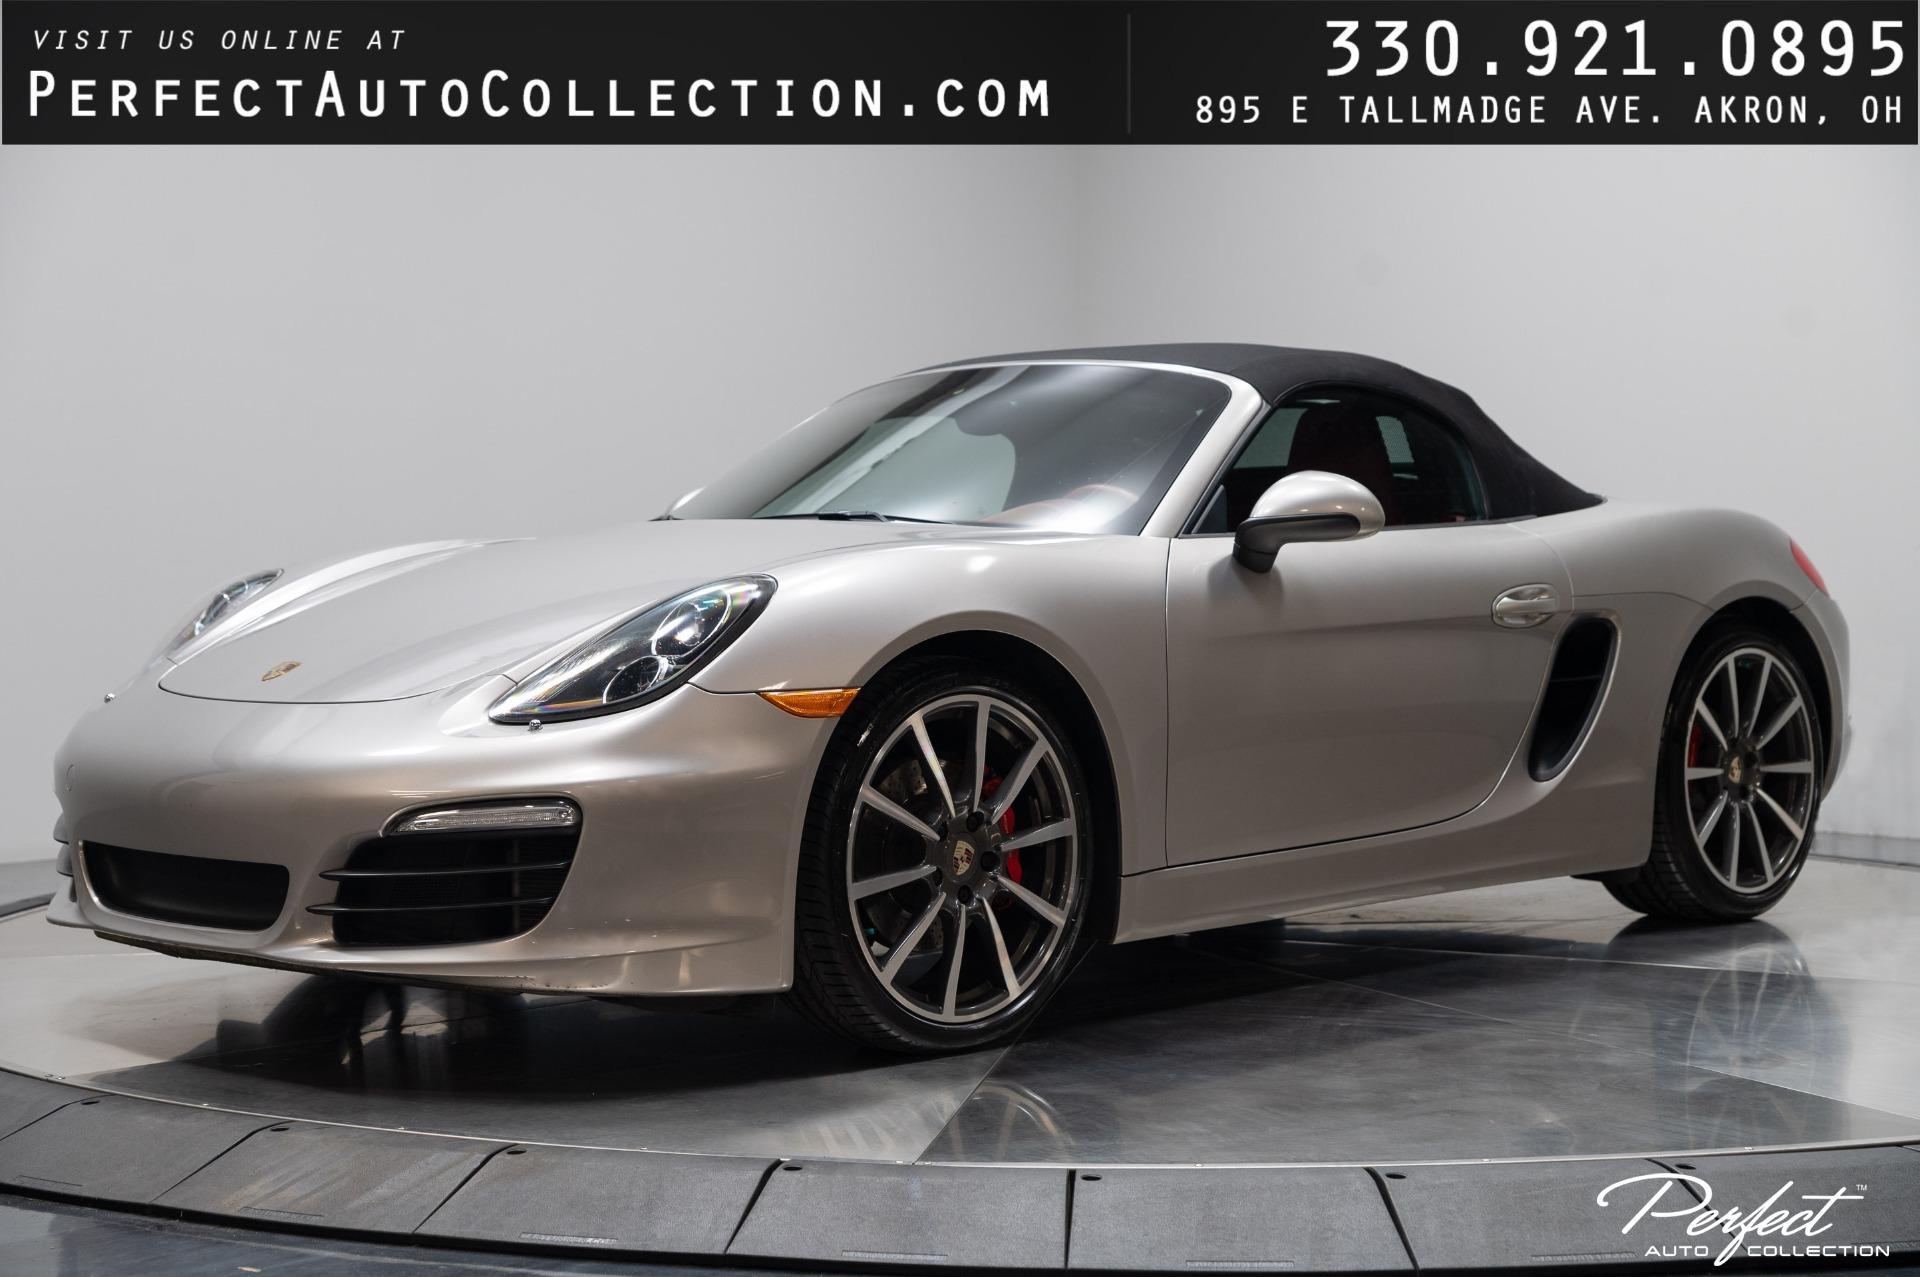 Used 2013 Porsche Boxster S for sale $46,995 at Perfect Auto Collection in Akron OH 44310 1